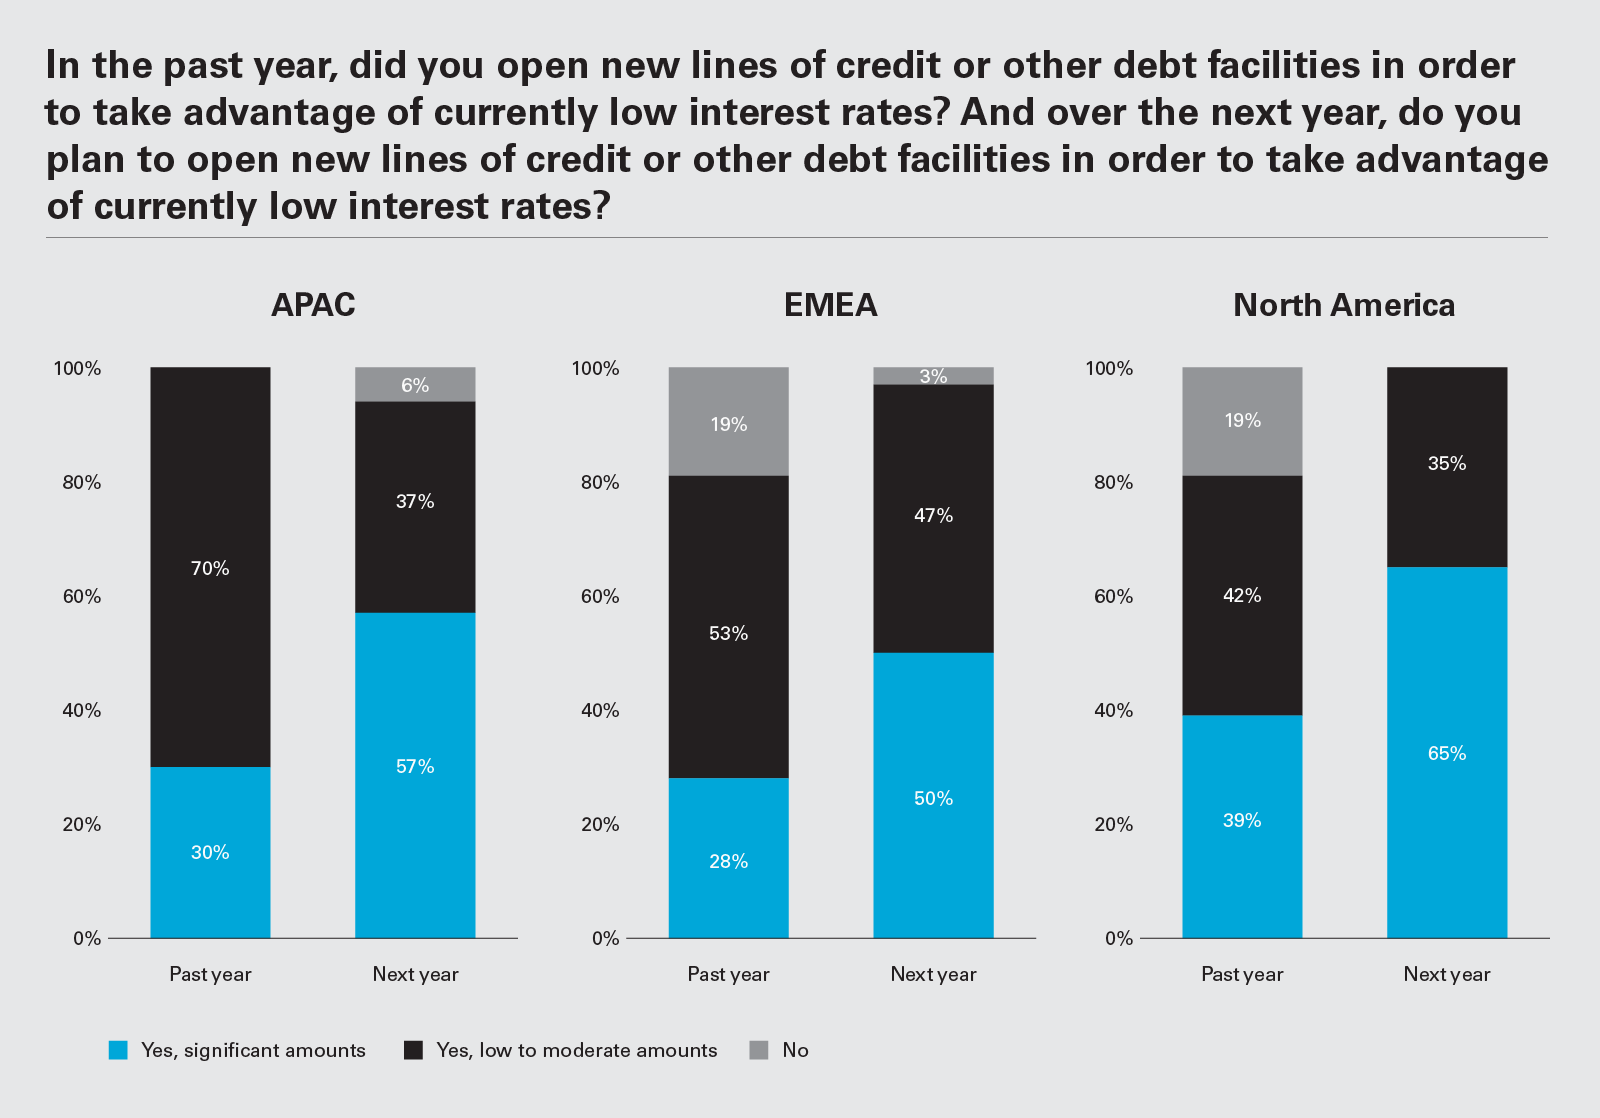 In the past year, did you open new lines of credit or other debt facilities in order to take advantage of currently low interest rates? (Graph PNG)